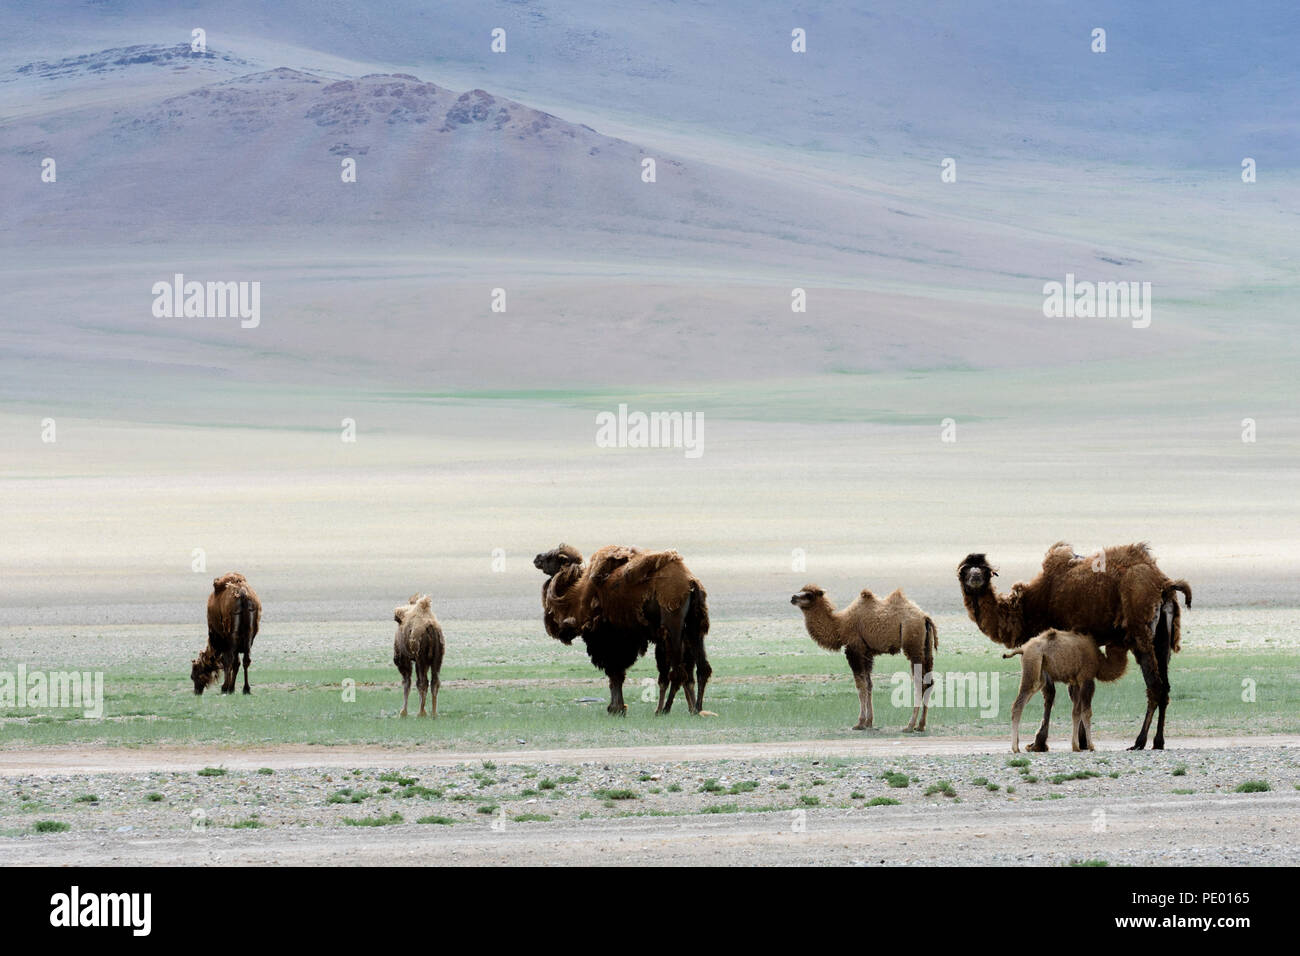 Camels in  the steppe of Mongolia. - Stock Image